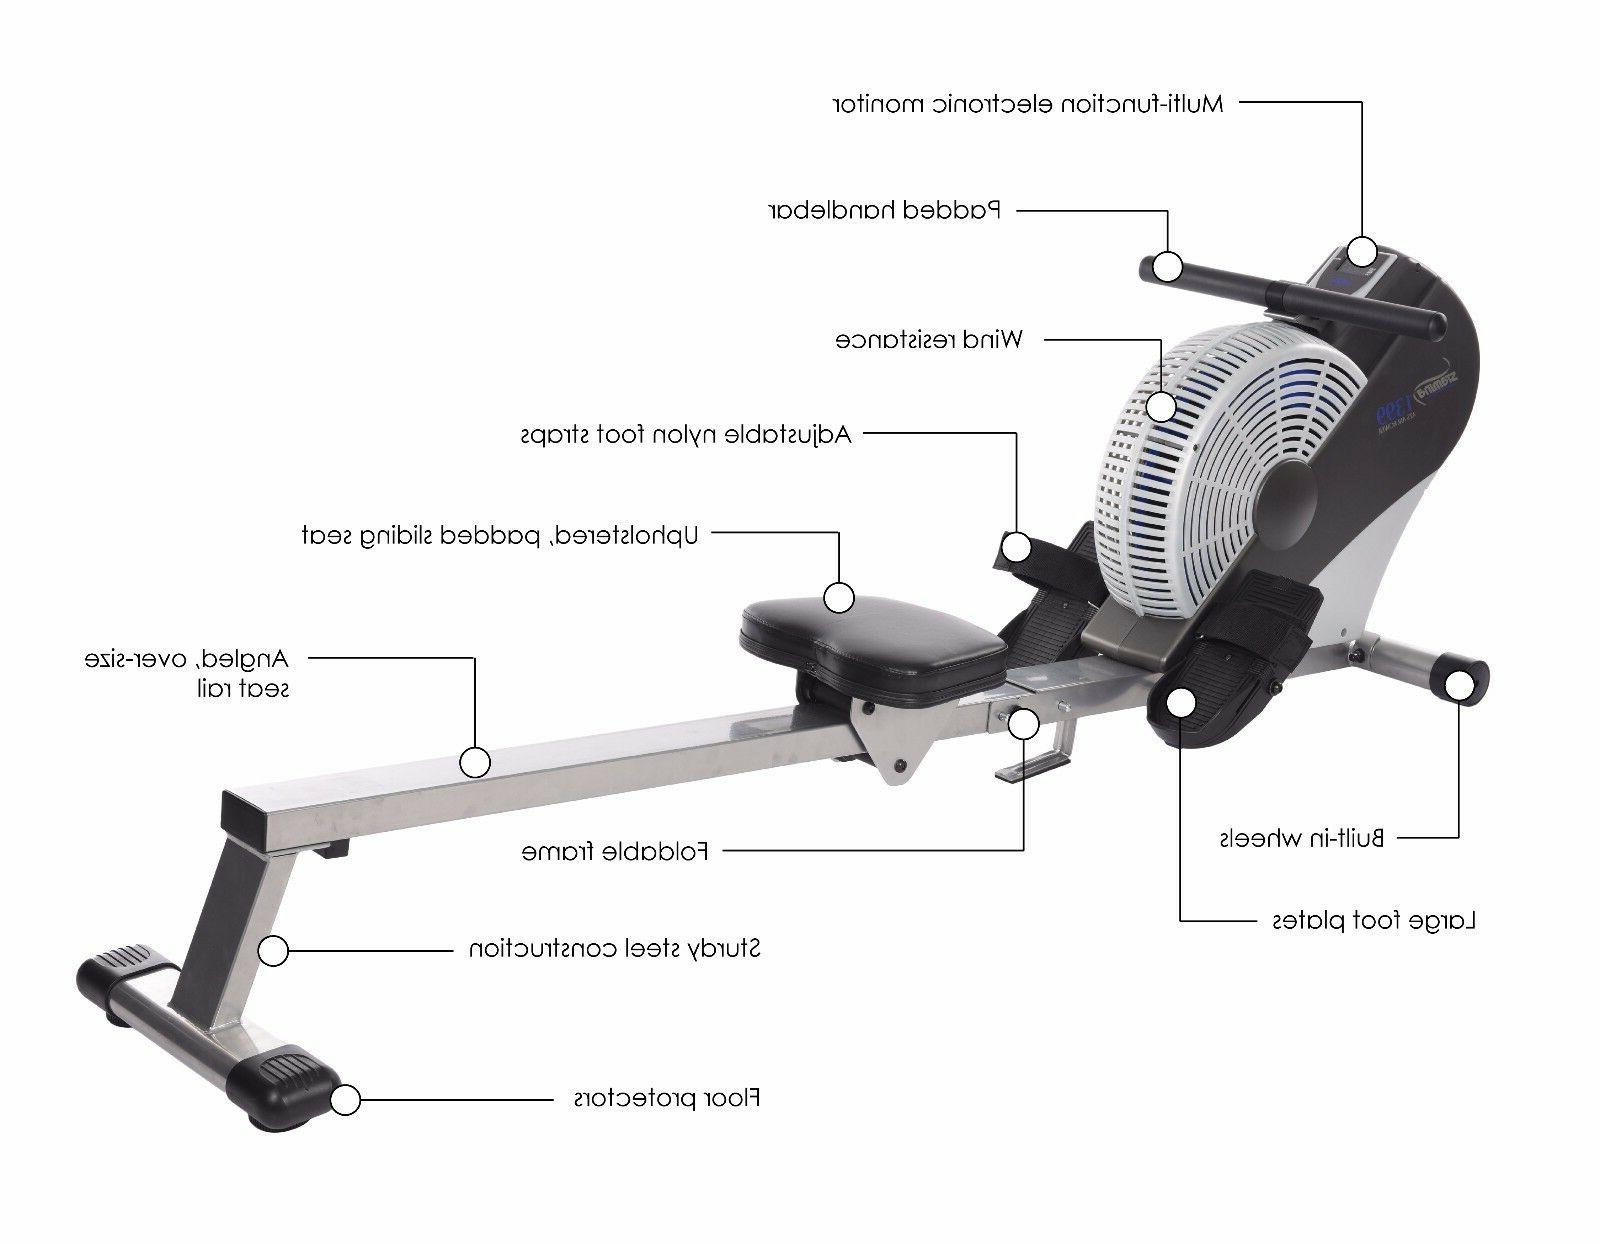 Wind Resistant Stamina® ATS AIR ROWER MACHINE